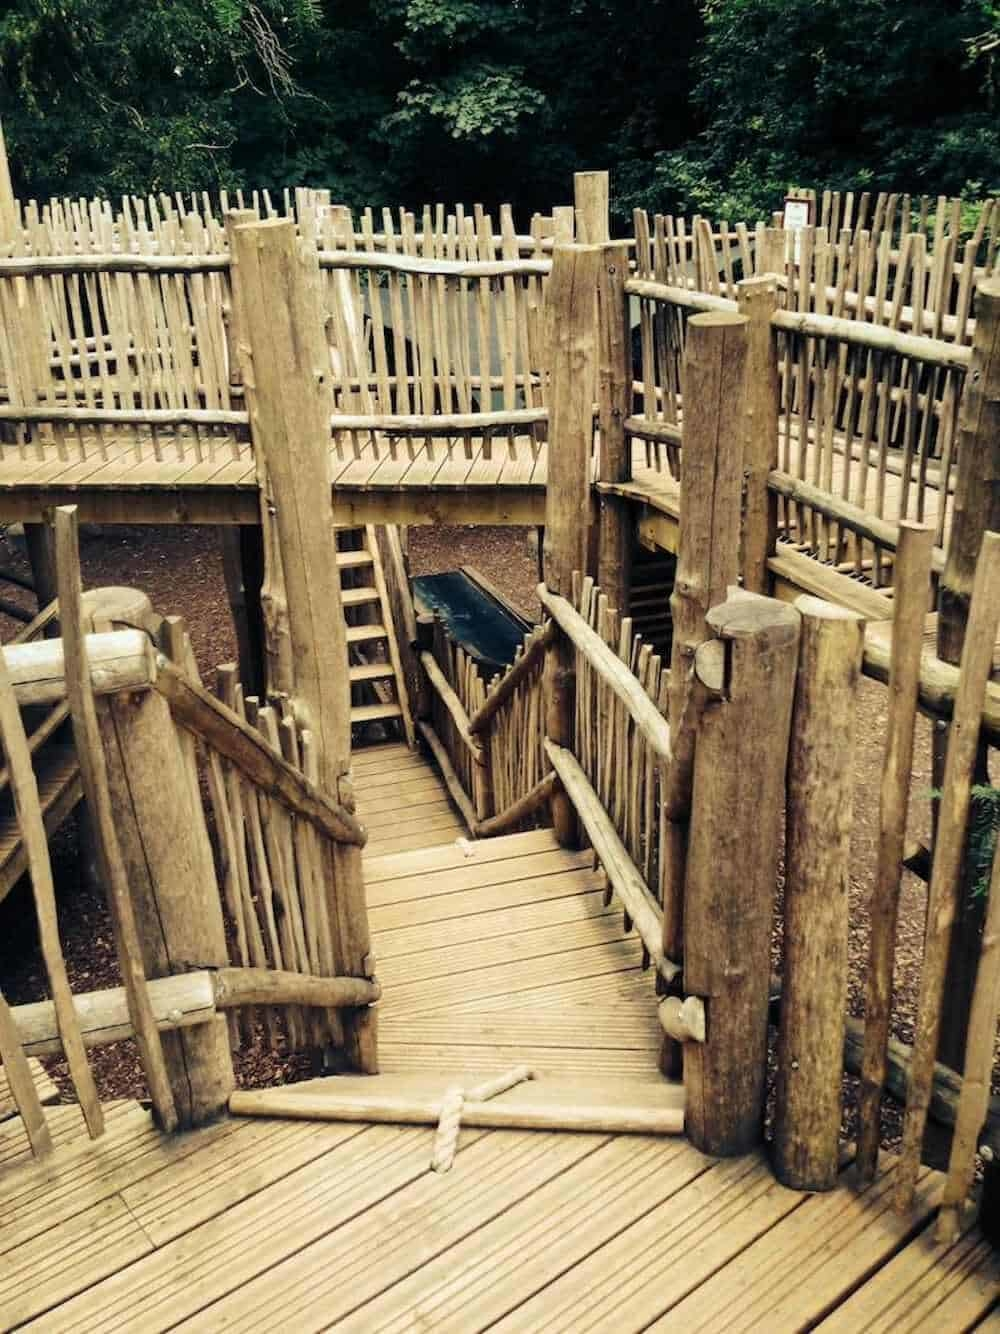 View across the towers of adventure at Cotswold Wildlife Park